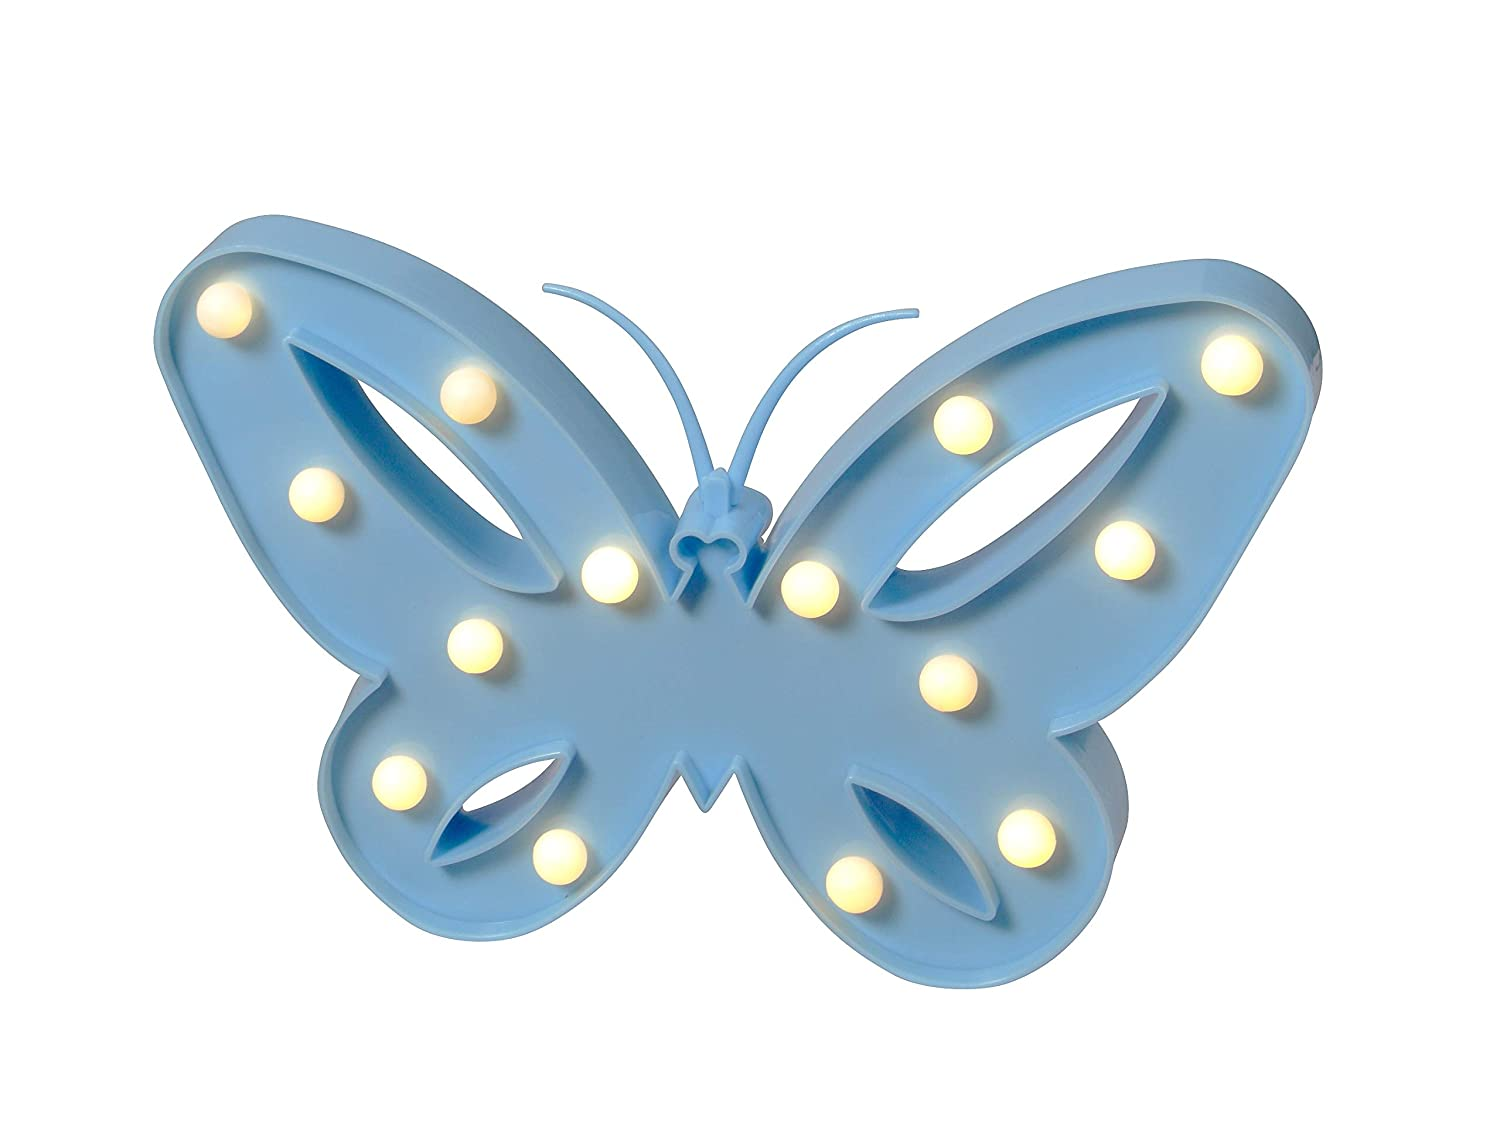 Warm & Fuzzy Toys Cordless LED Decor Lights Butterfly